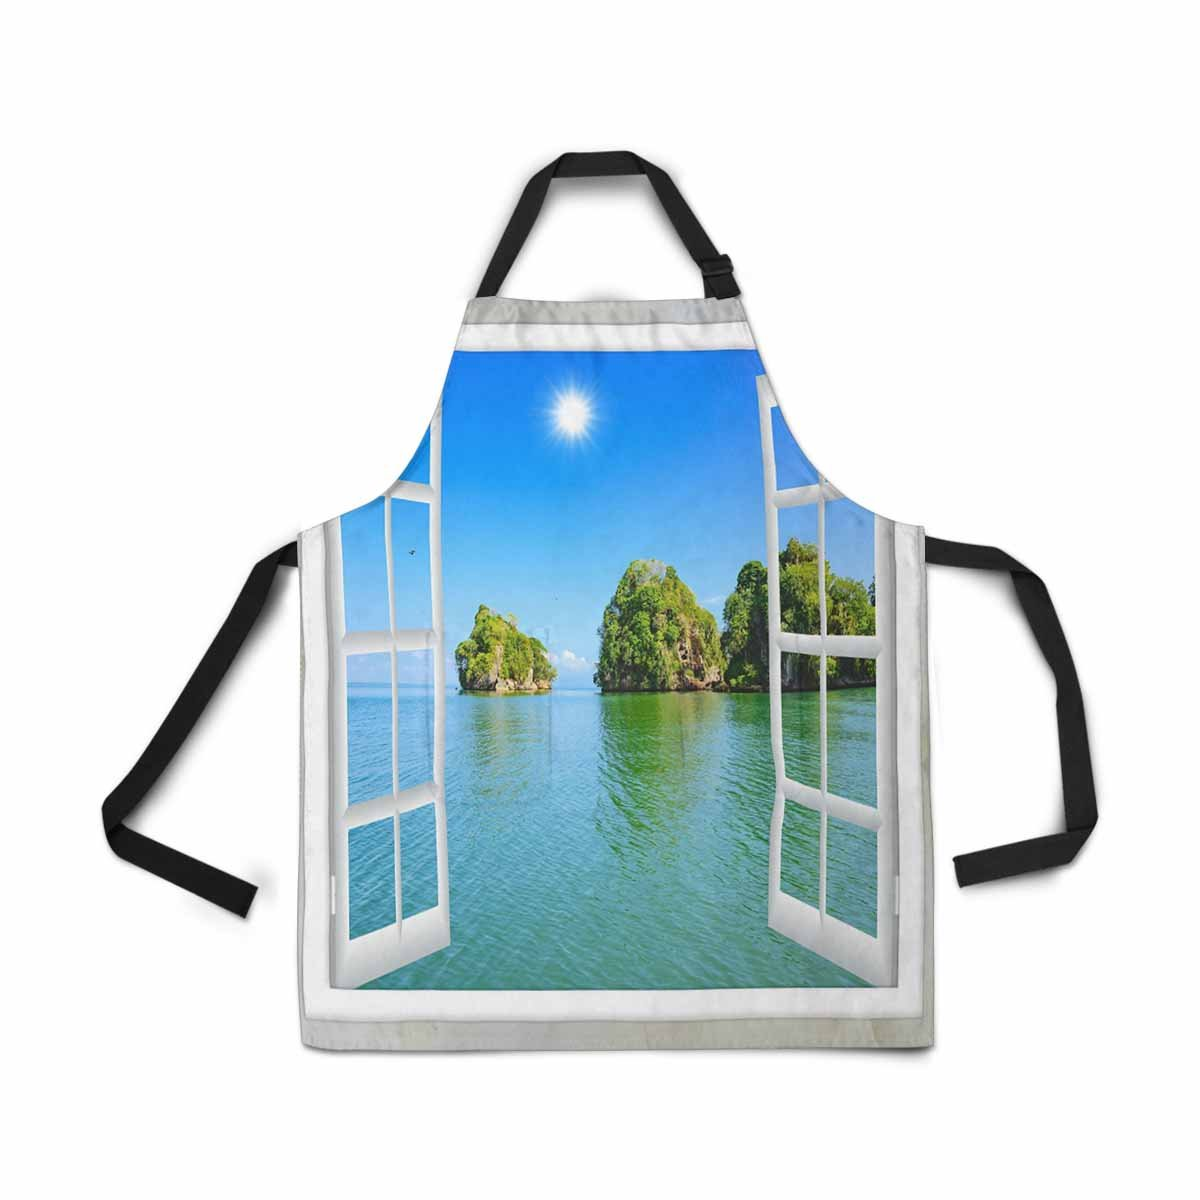 InterestPrint Adjustable Bib Apron for Women Men Girls Chef with Pockets, Window View Ocean Island Sunny Summer Day Novelty Kitchen Apron for Cooking Baking Gardening Pet Grooming Cleaning